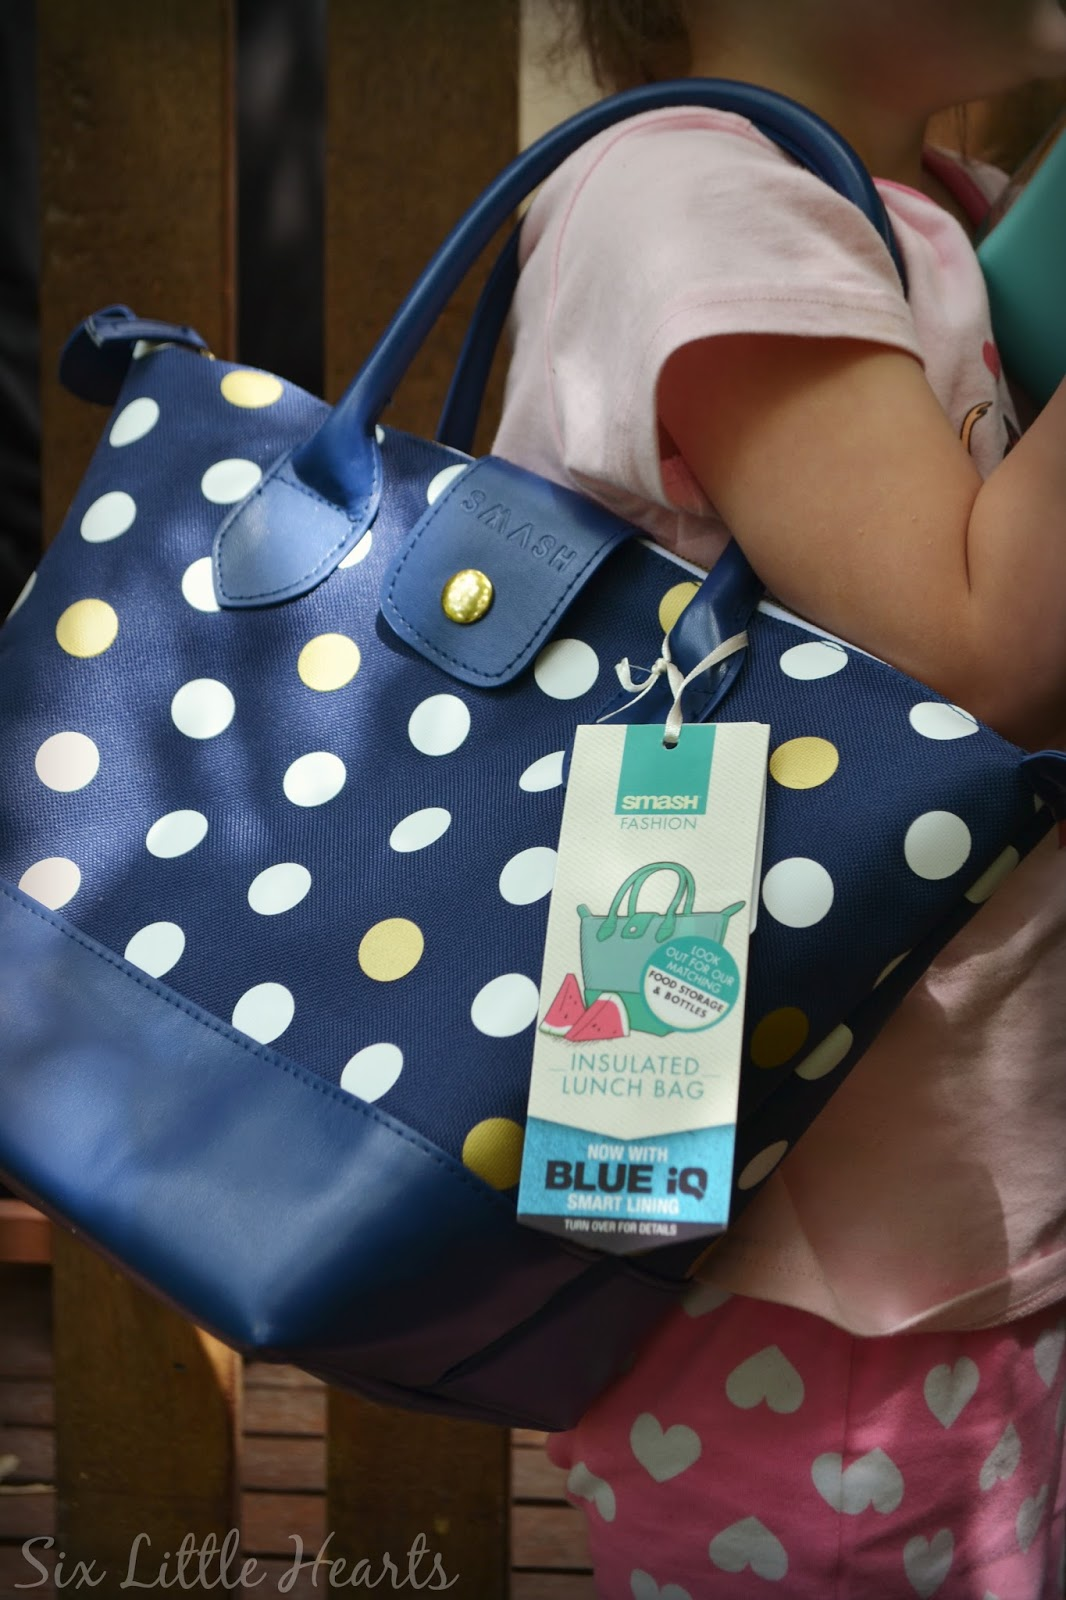 Three Year Old Celeste Chose This Fashionable Polka Dot Insulated Lunch Bag With Blue Iq Smart Lining Darn Too Because That S One Mummy Likes In